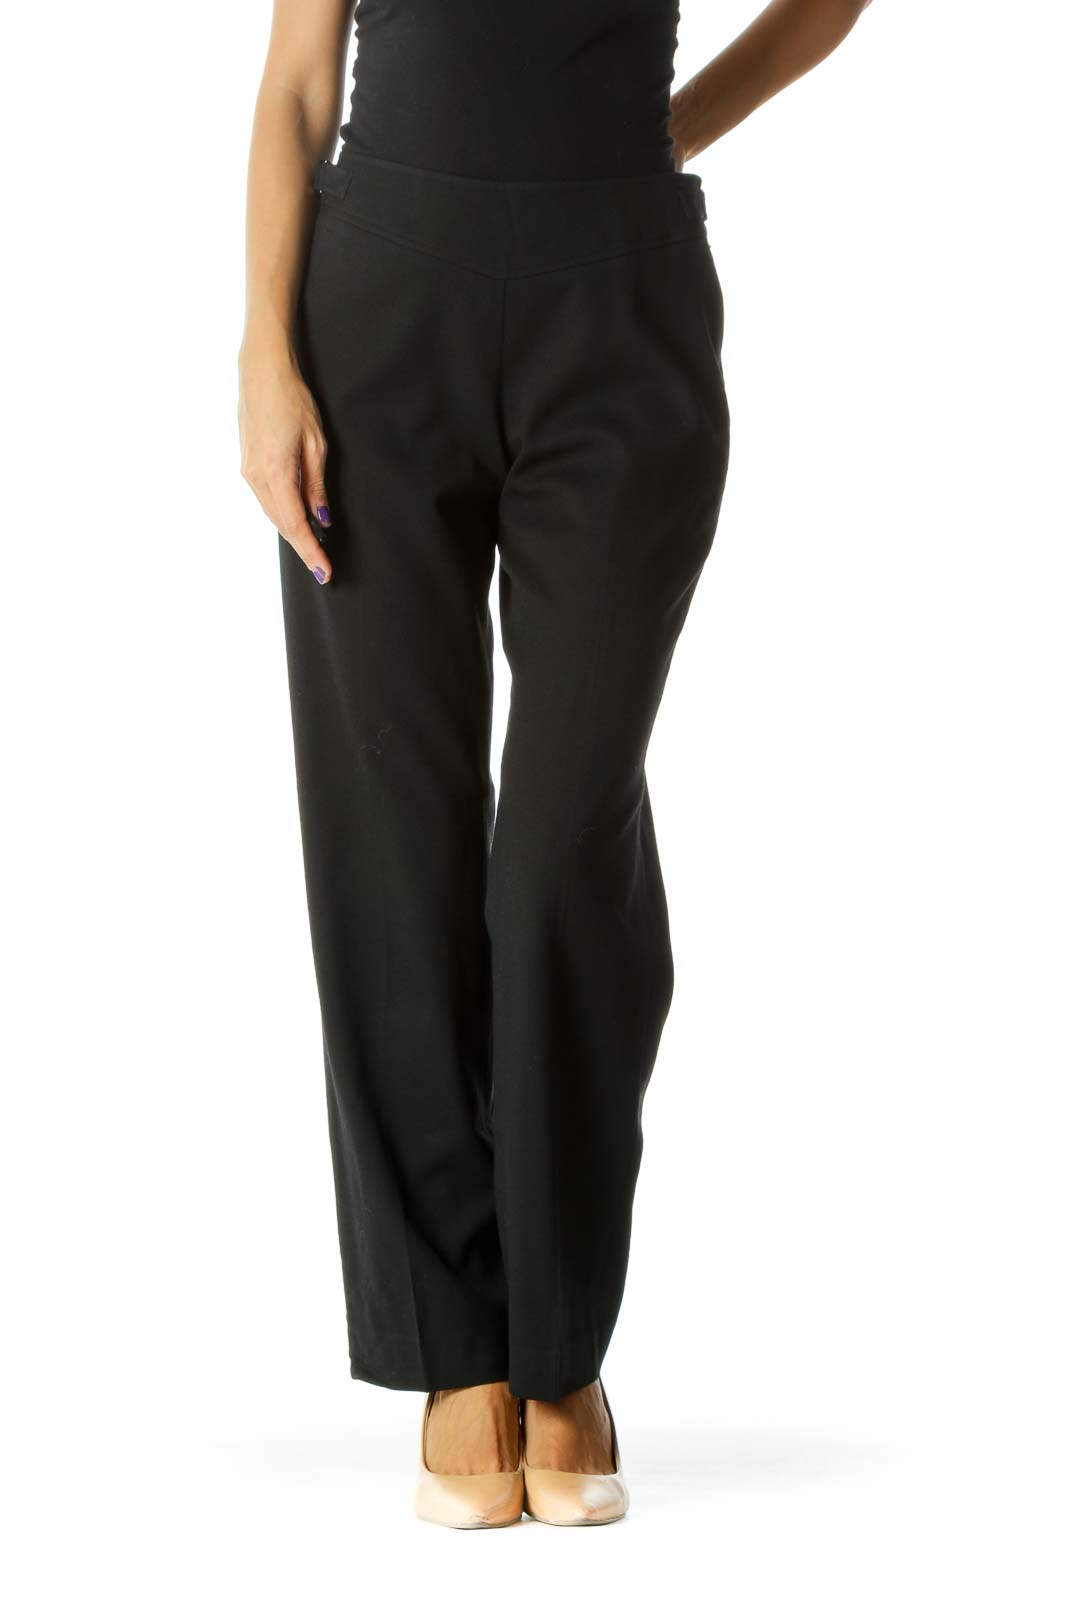 Black Wool Blend Belt Fastener Detail Stretch Zippered Pants